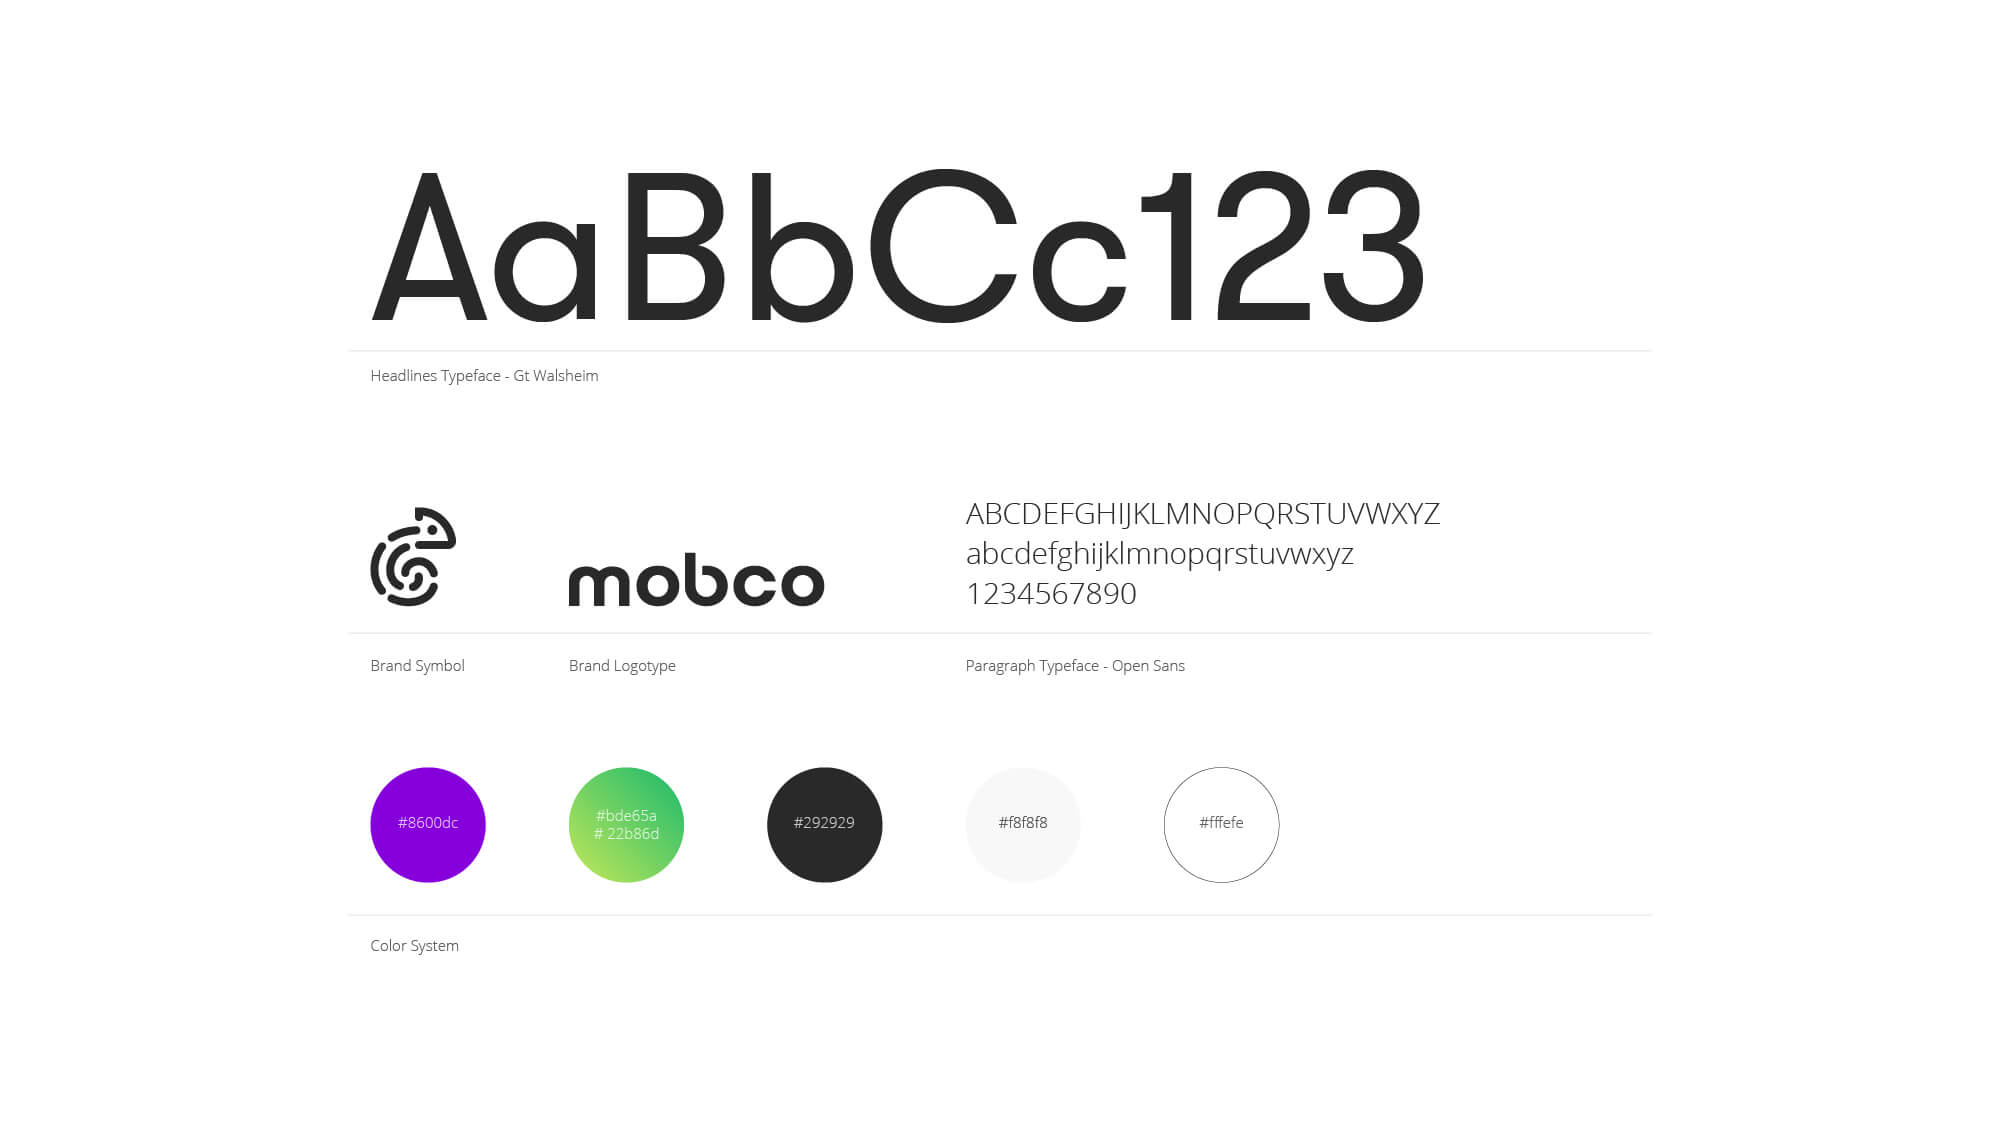 mobco brand guidelines page